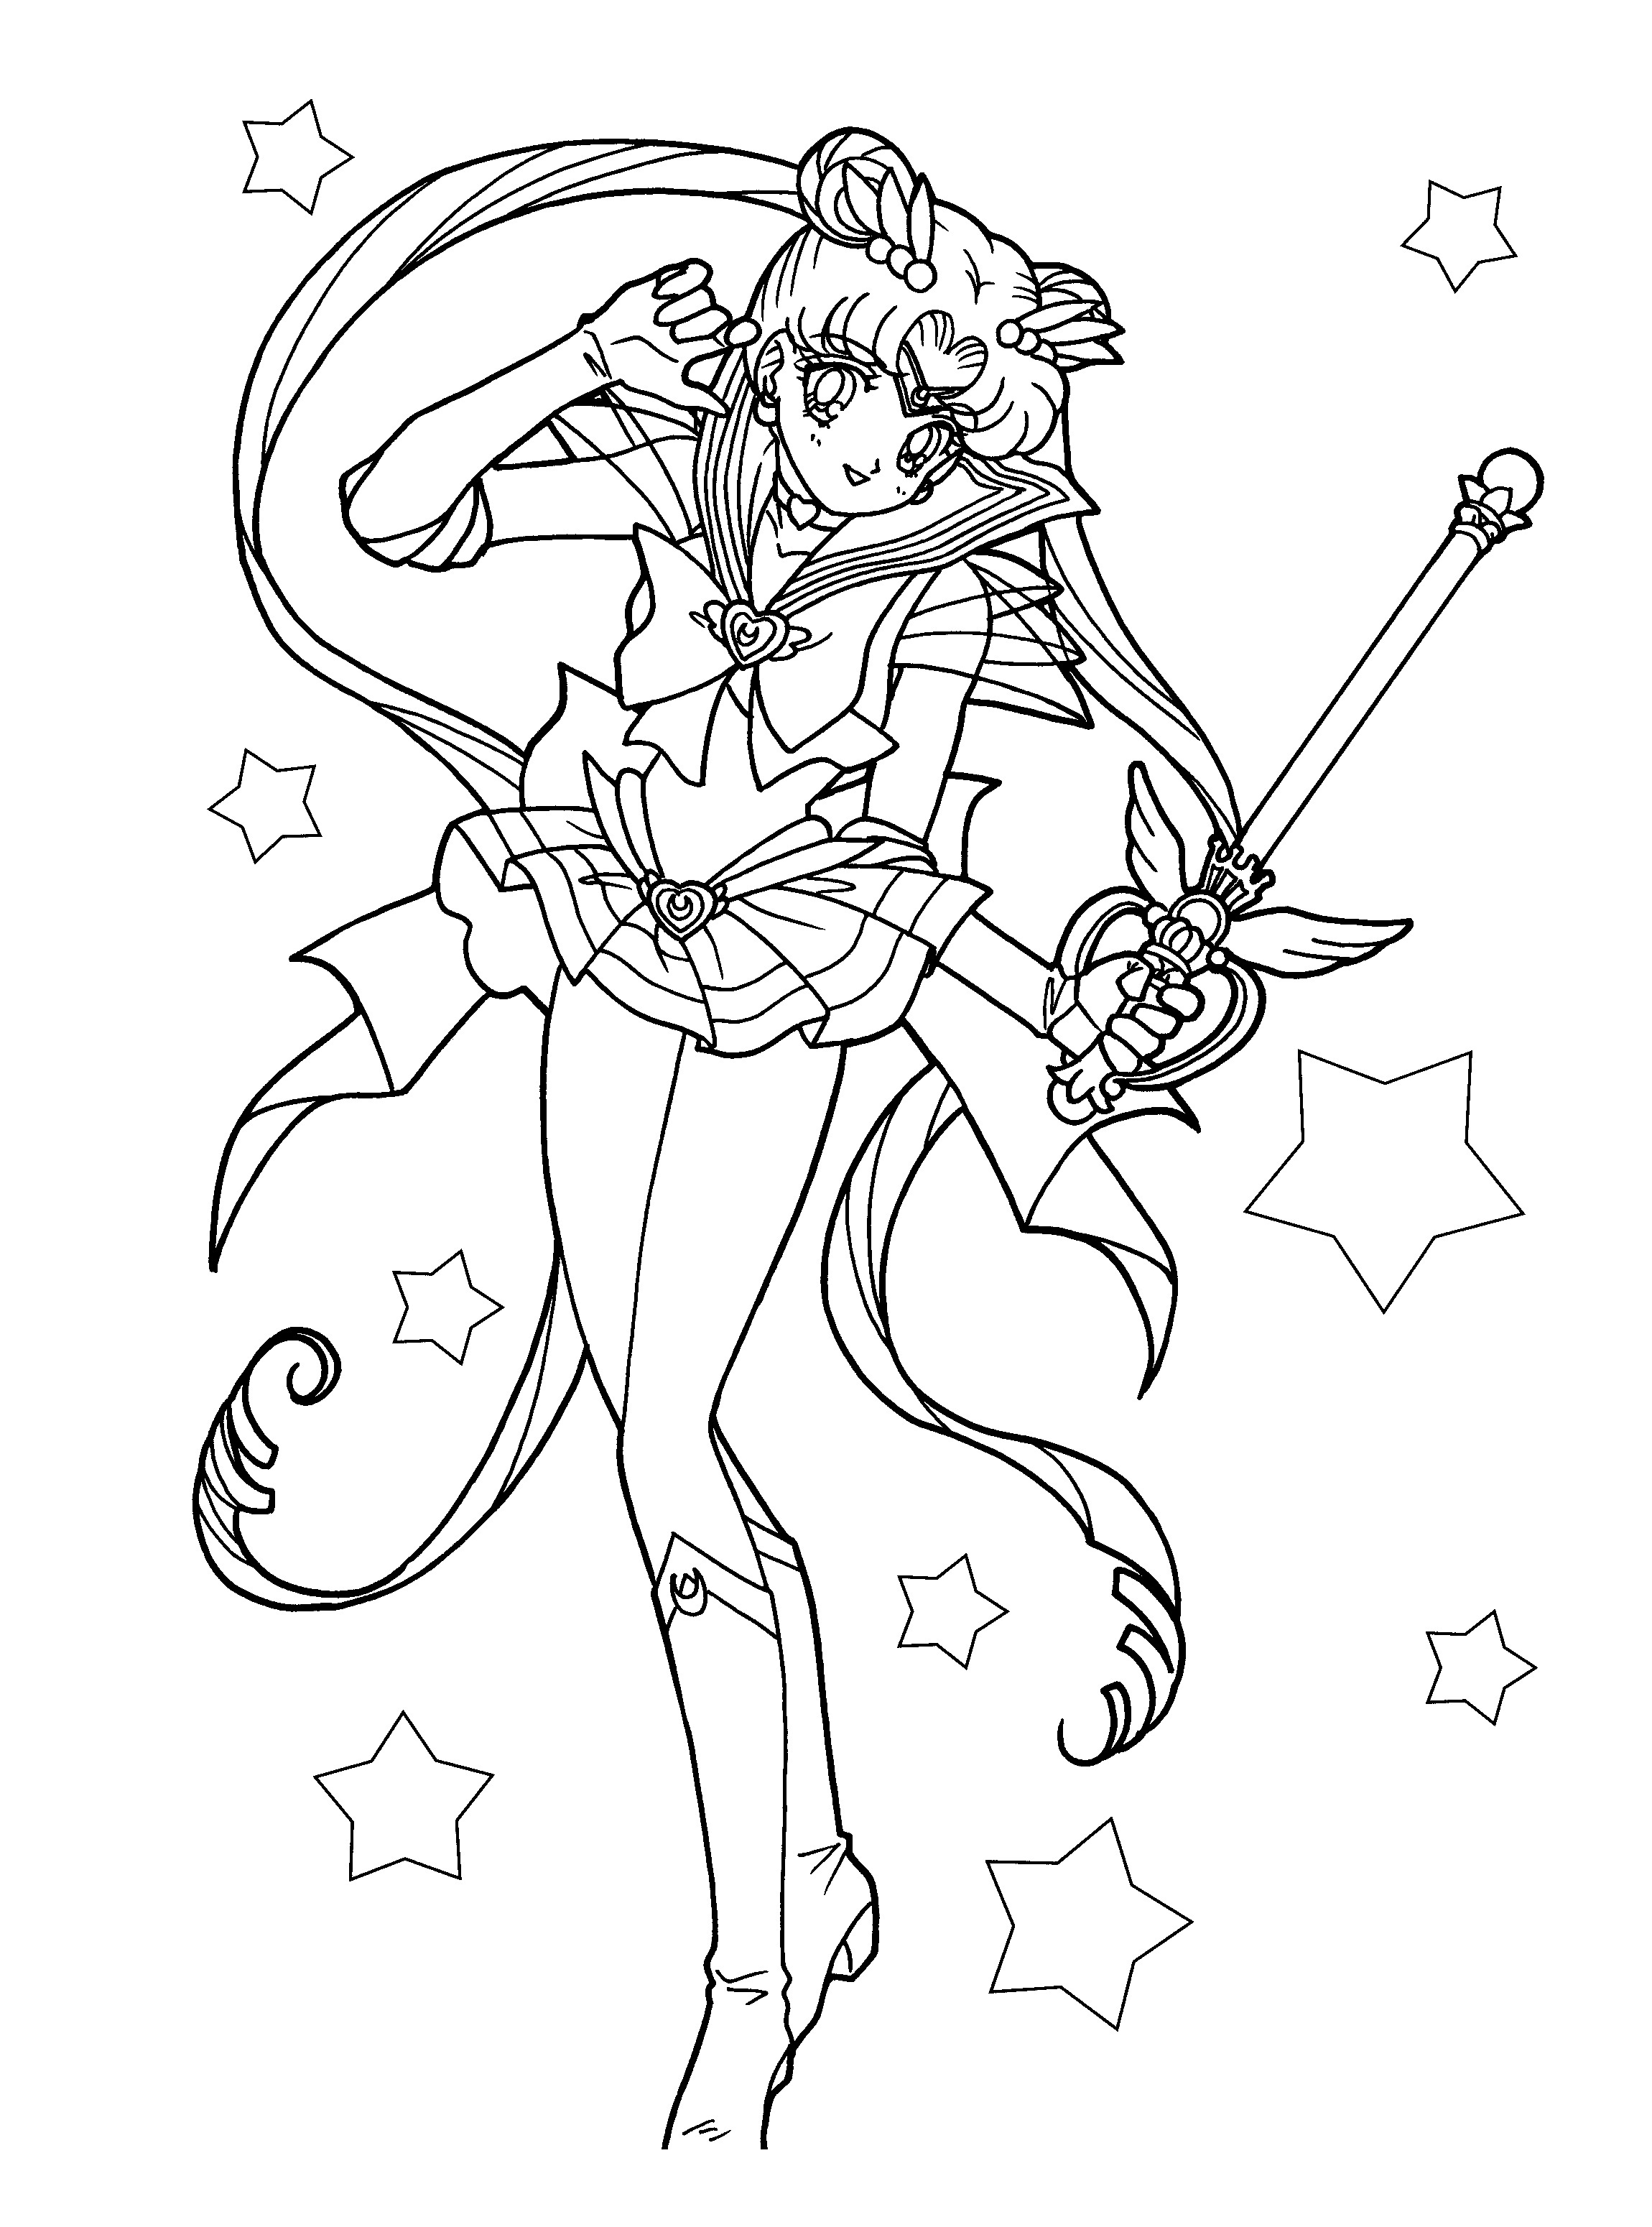 sailor moon coloring pages characters - photo#35